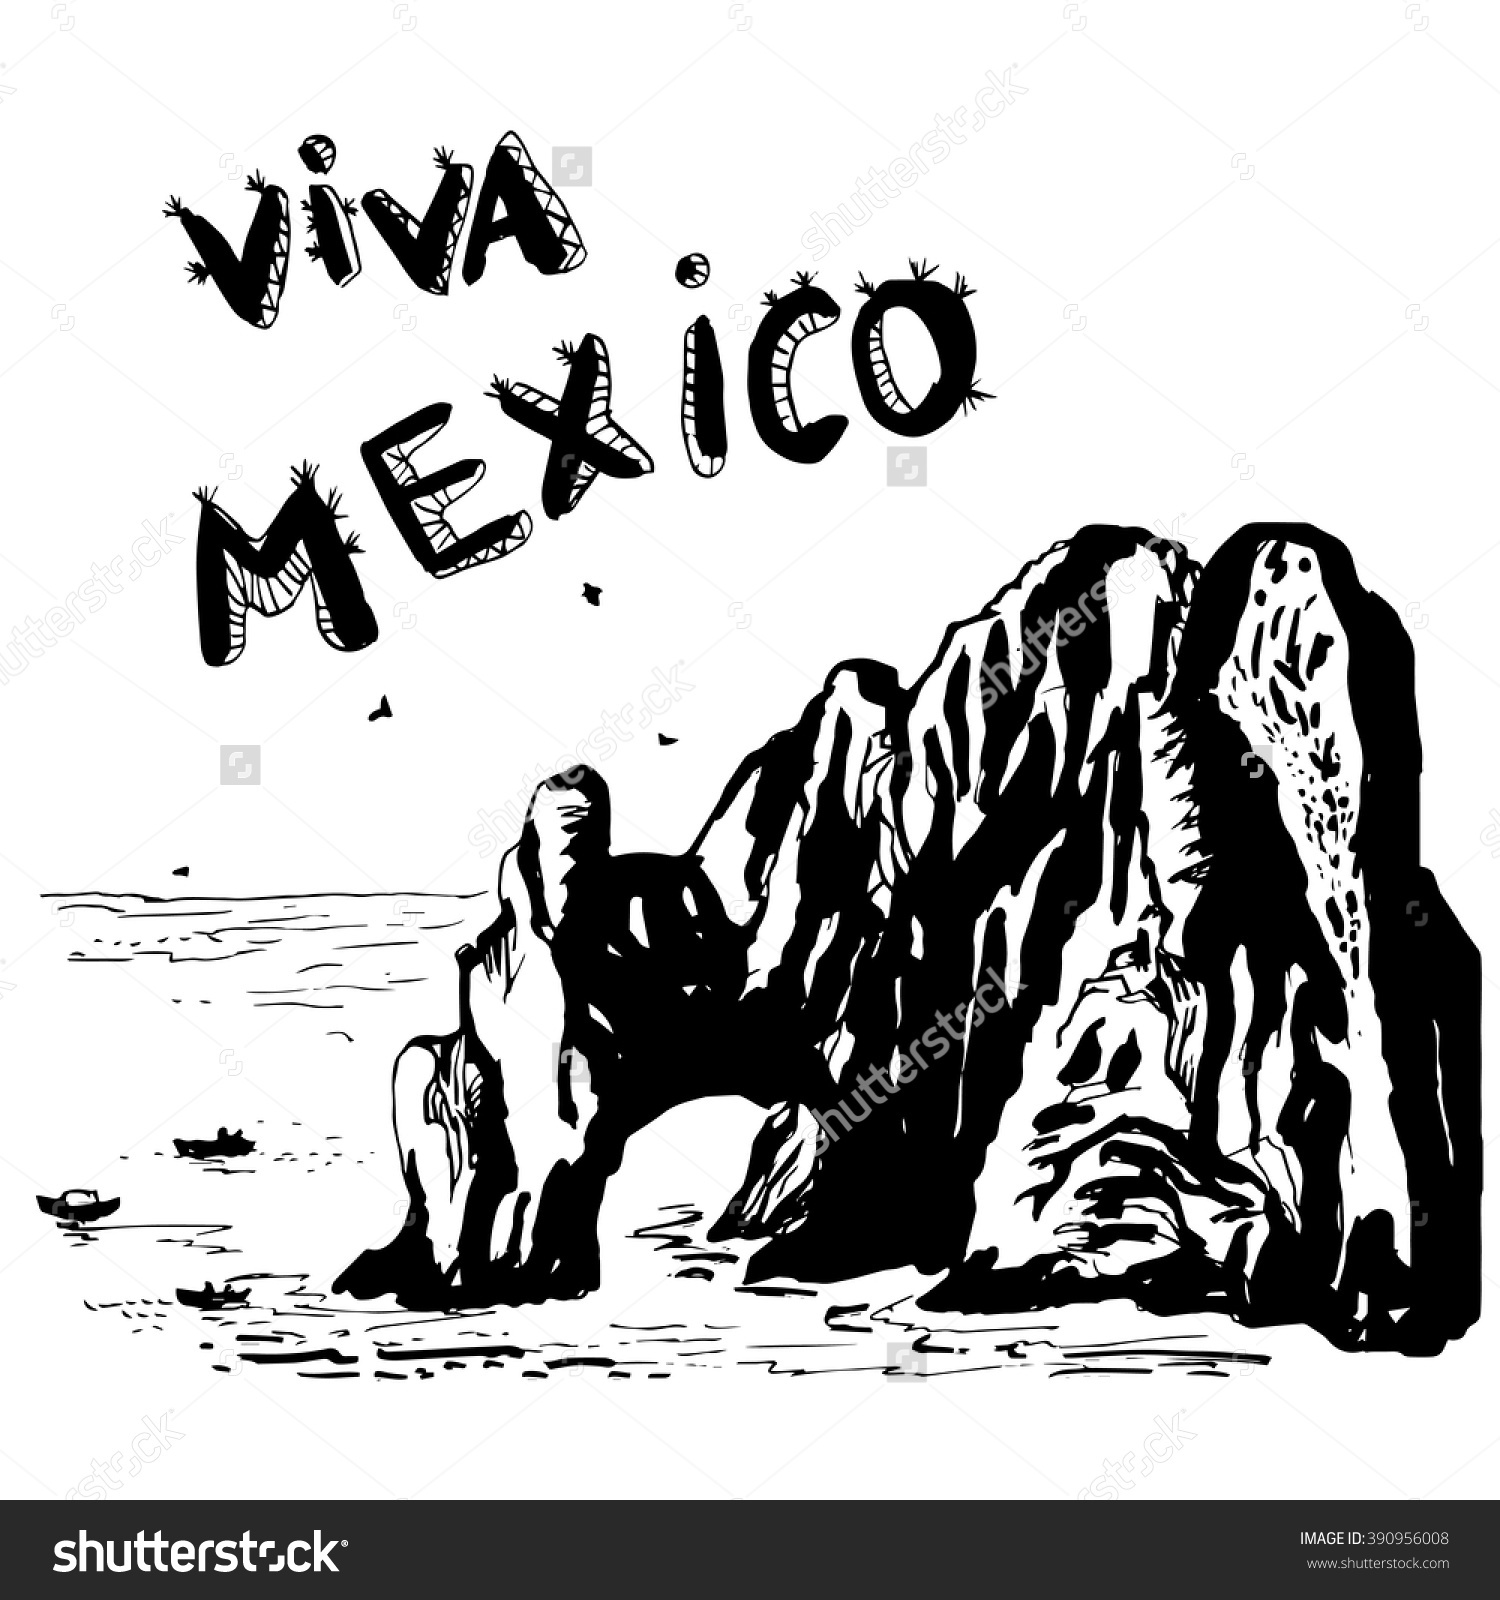 Cabo San Lucas clipart #7, Download drawings